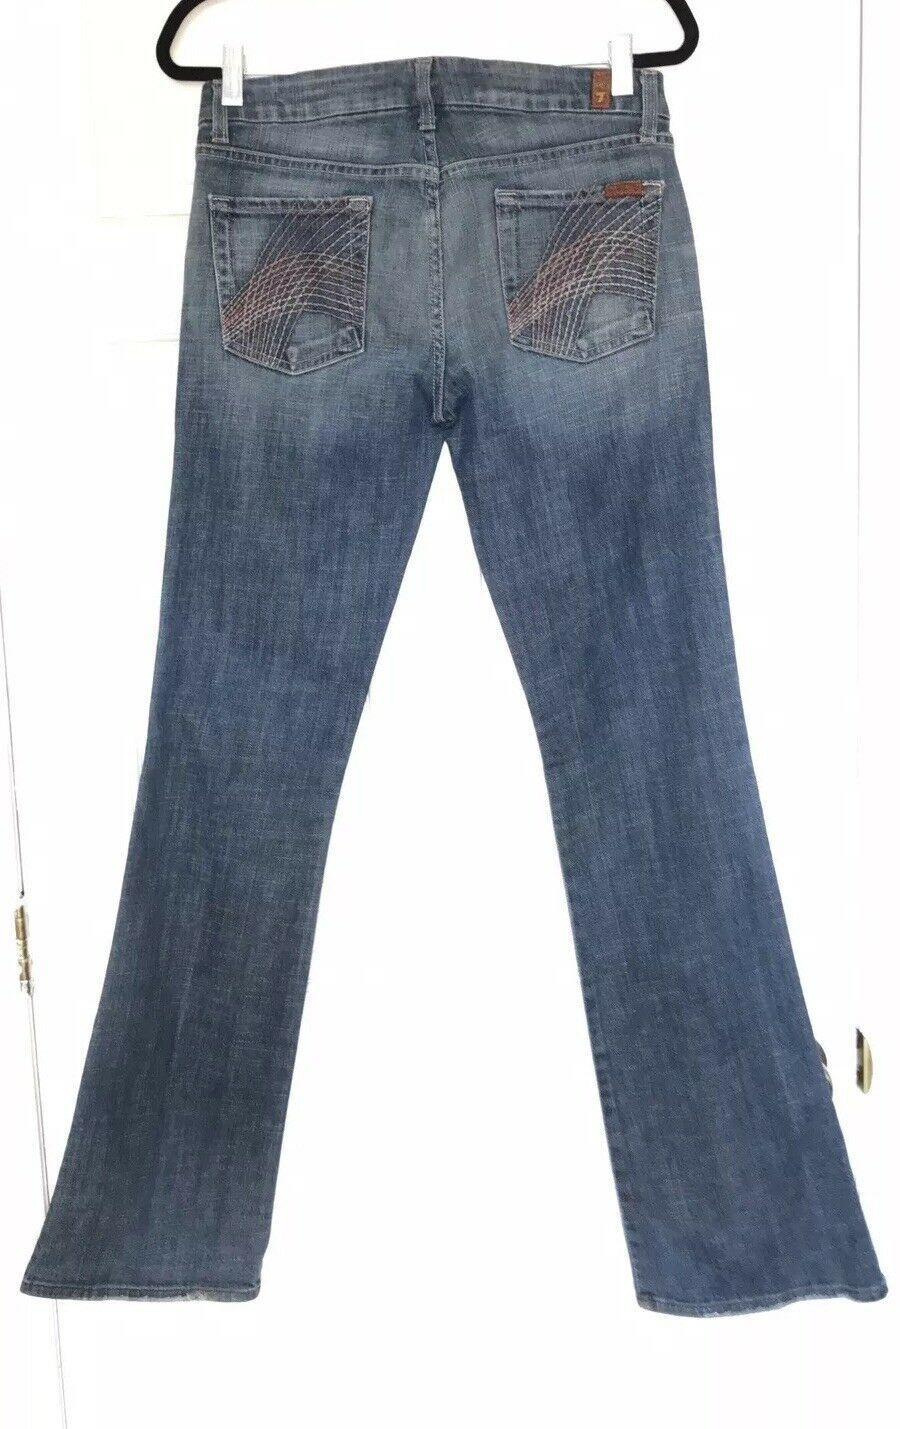 7 For All Mankind Jeans Lily bluee Distressed Denim